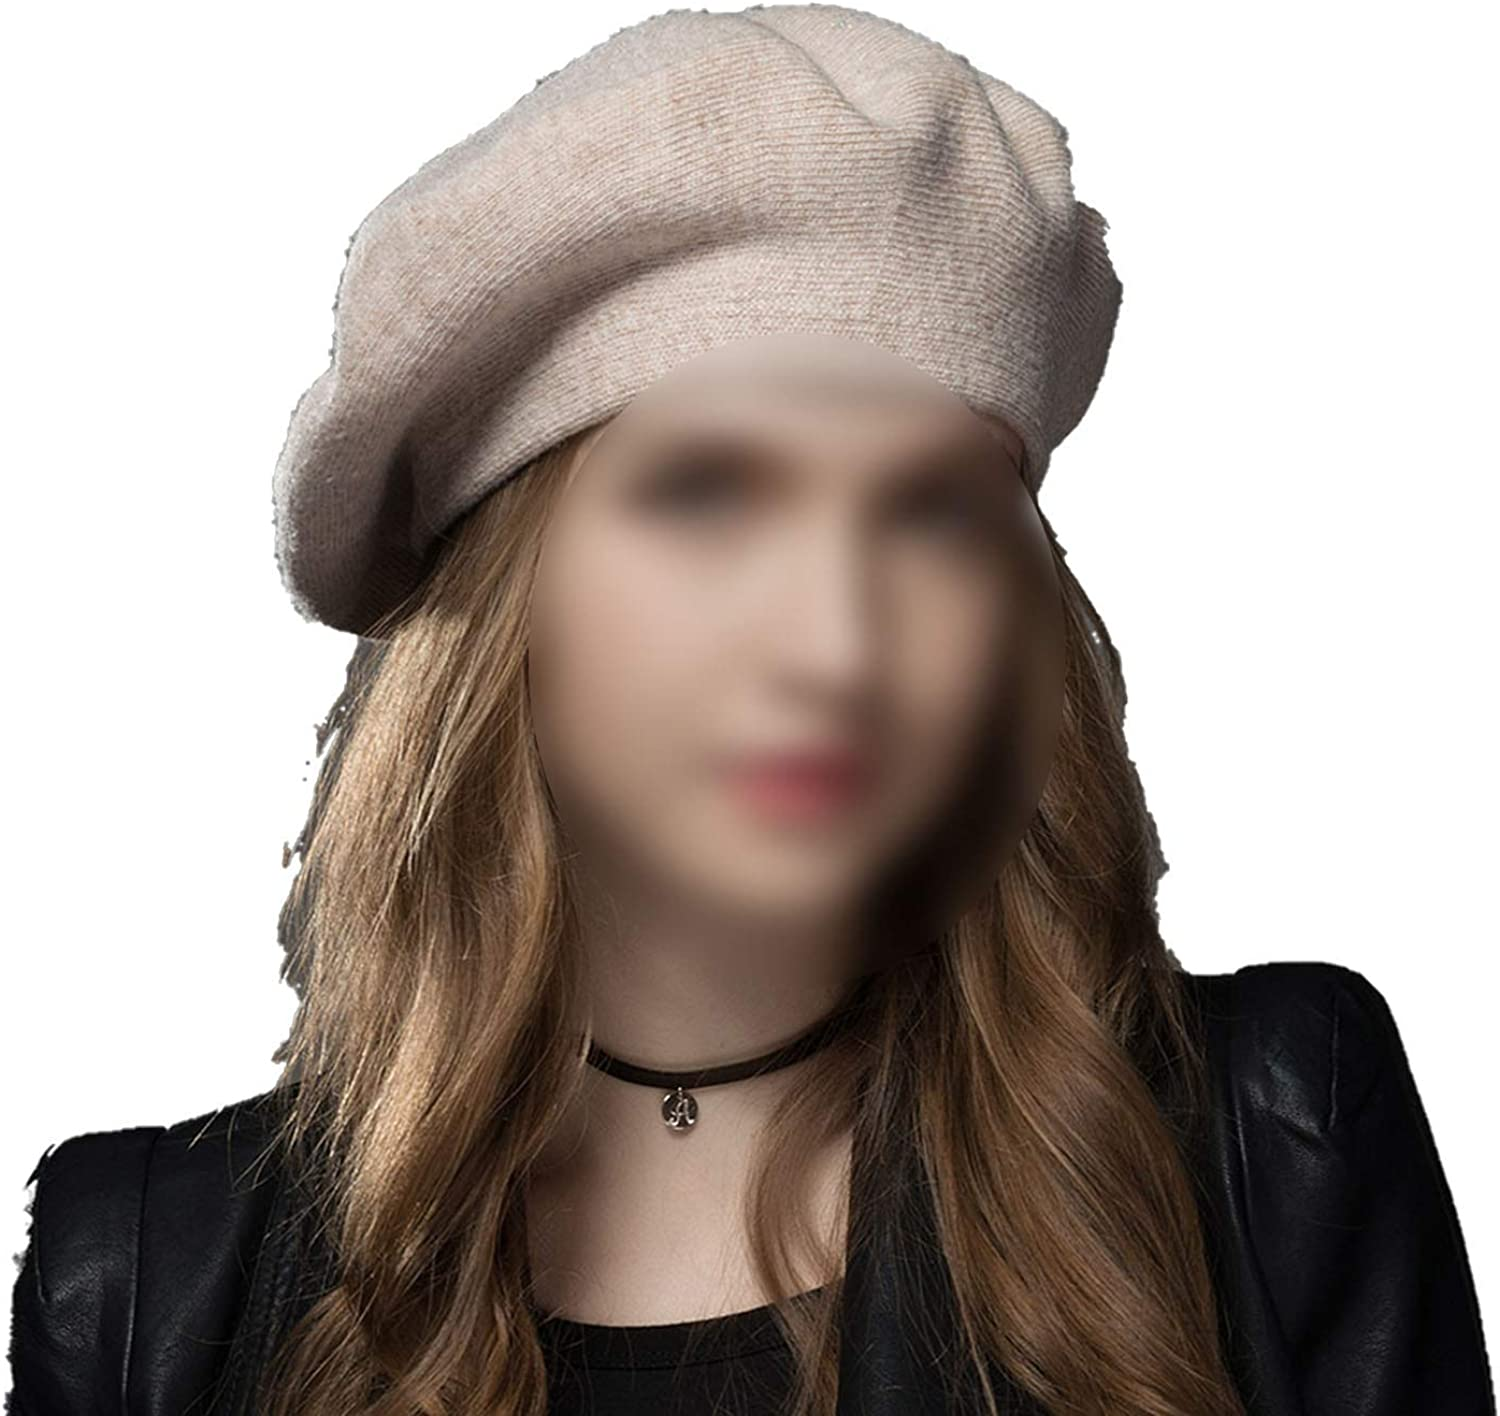 Dami-shop High end Winter Hat Berets 2018 New Wool Cashmere Womens Warm Brand Casual Hats for Girls Cap